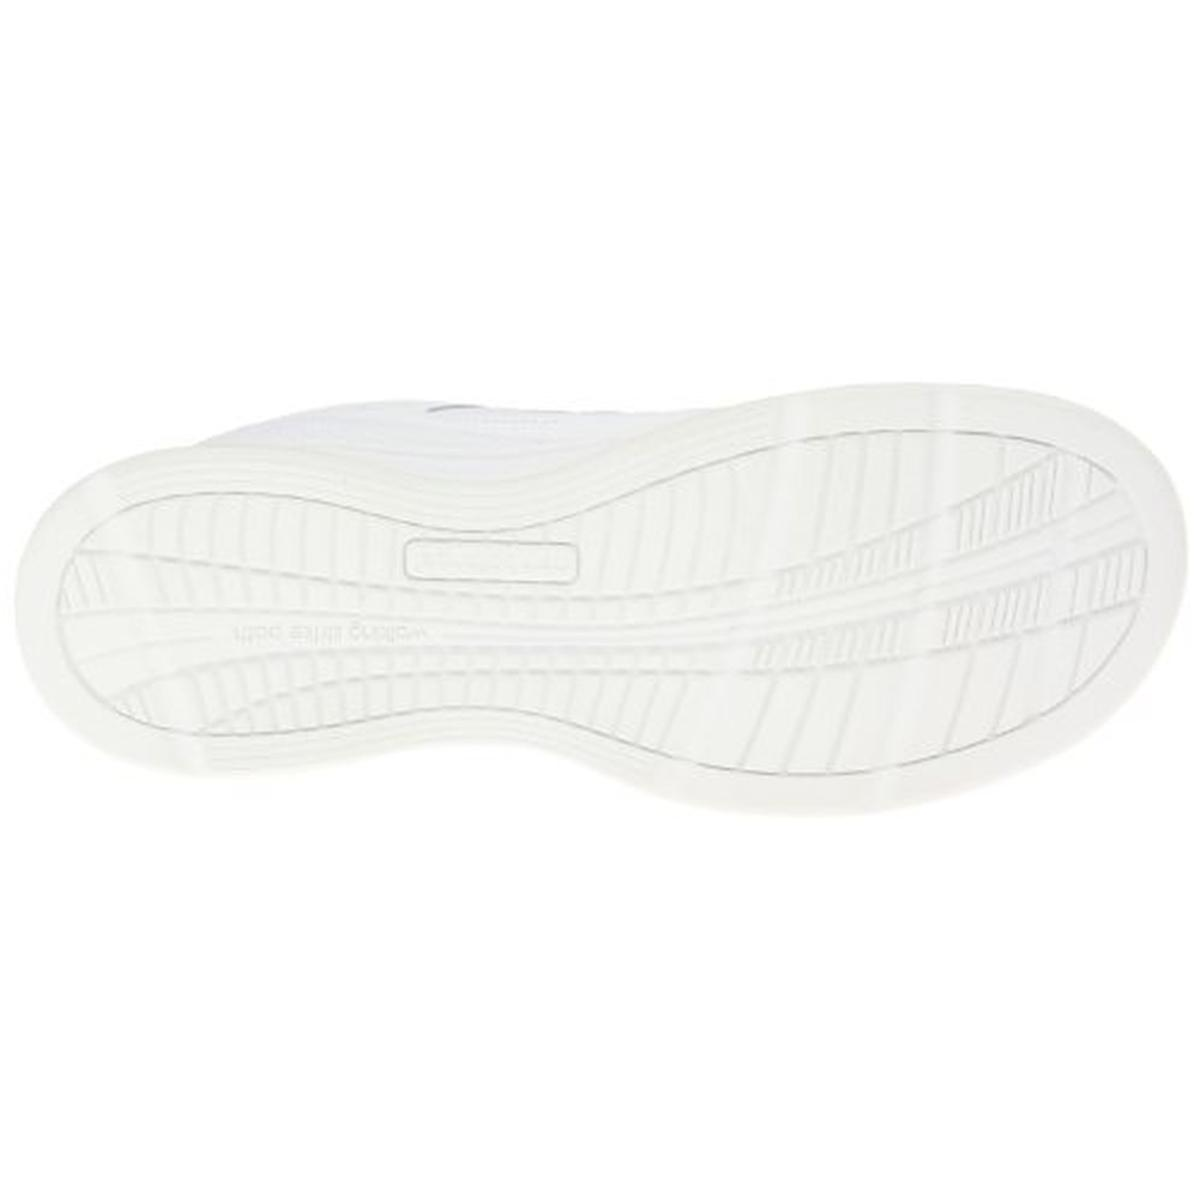 New Balance Mens 577 White Walking Shoes 12.5 Extra Wide